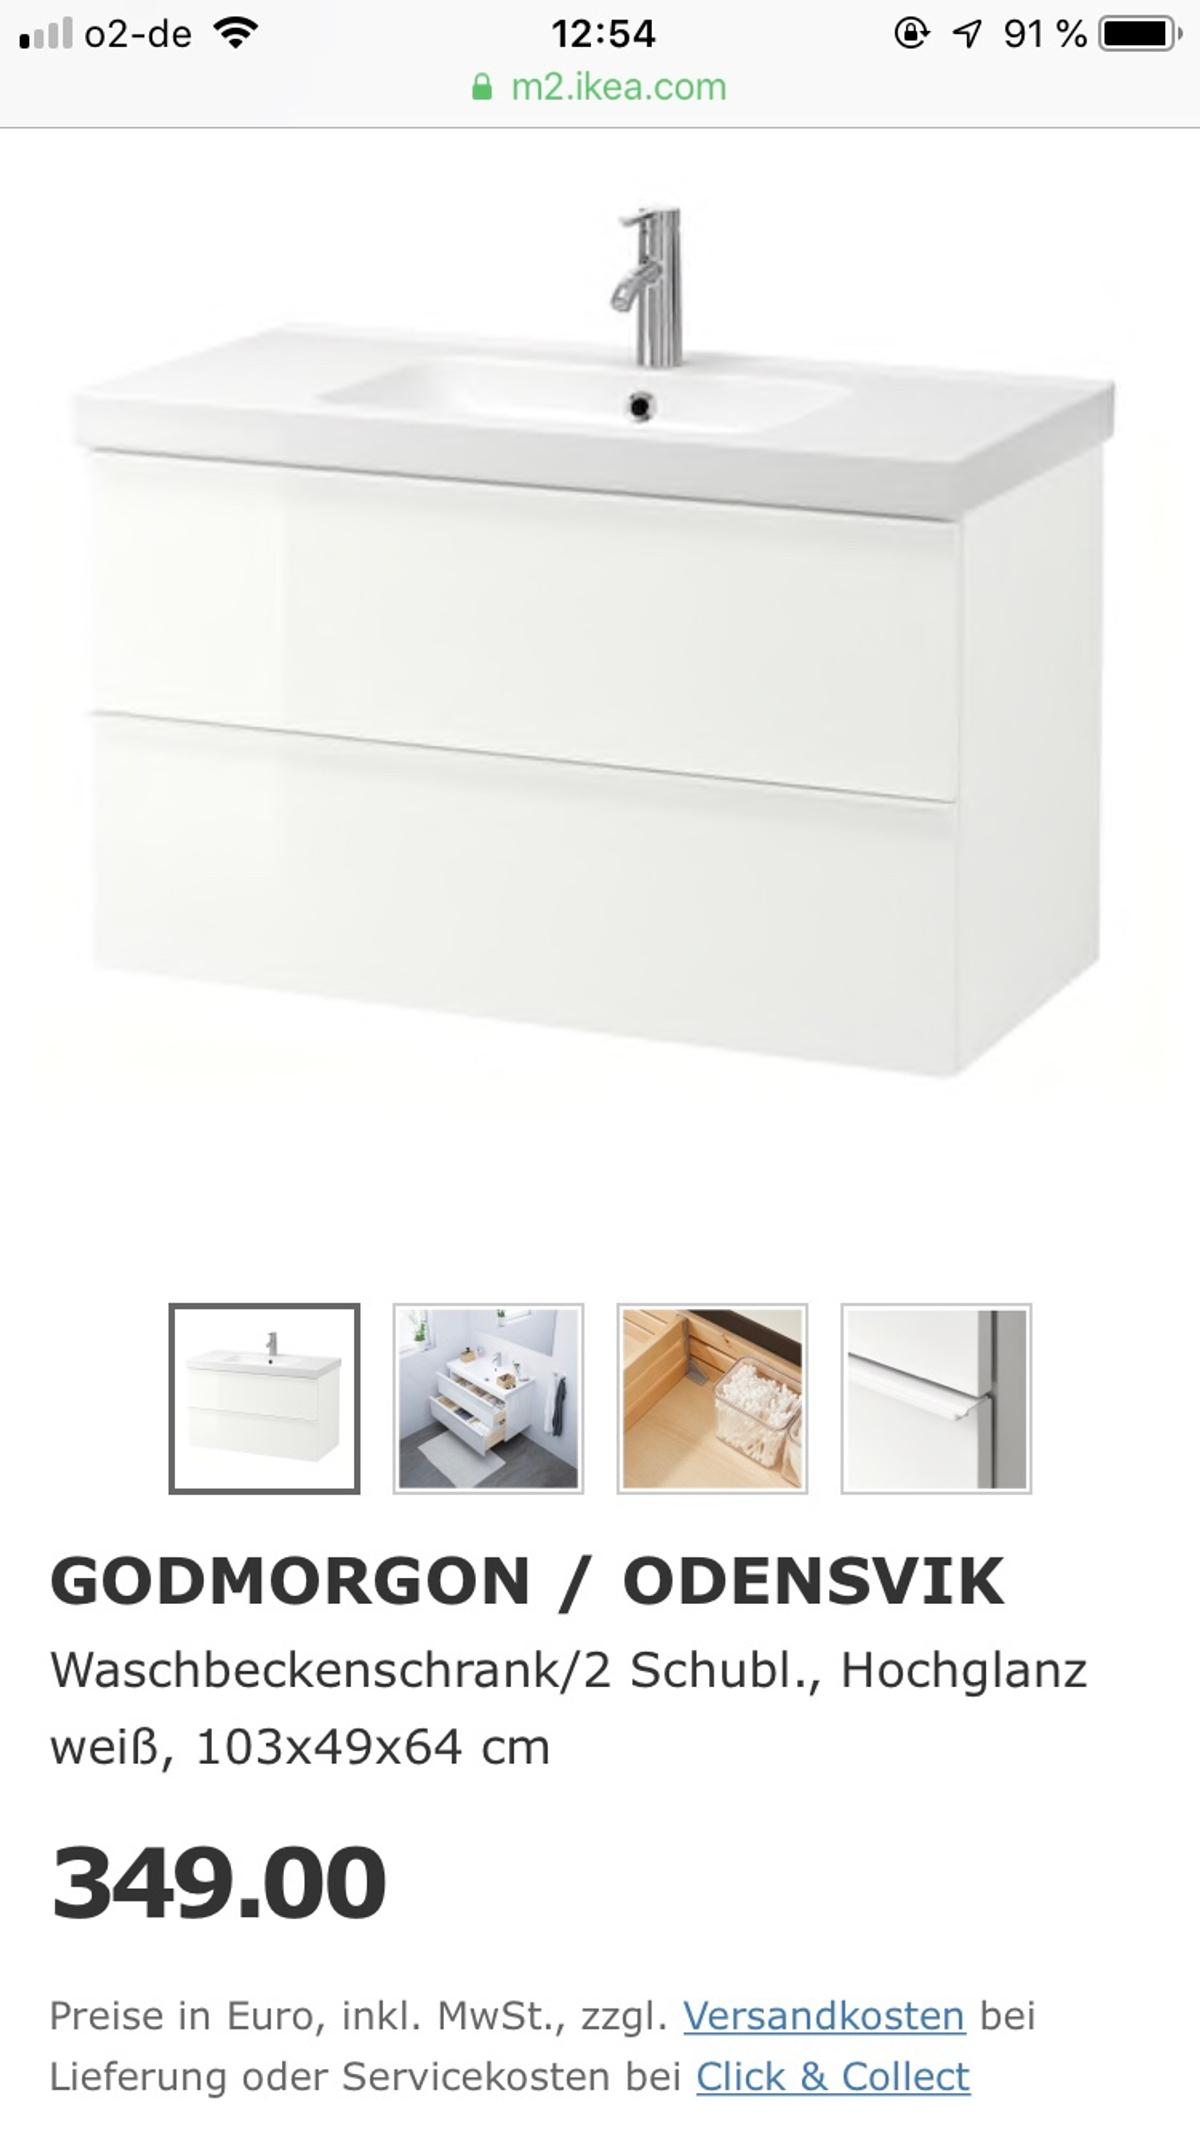 Ikea Godmorgon Odensvik In 85368 Moosburg For 190 00 For Sale Shpock